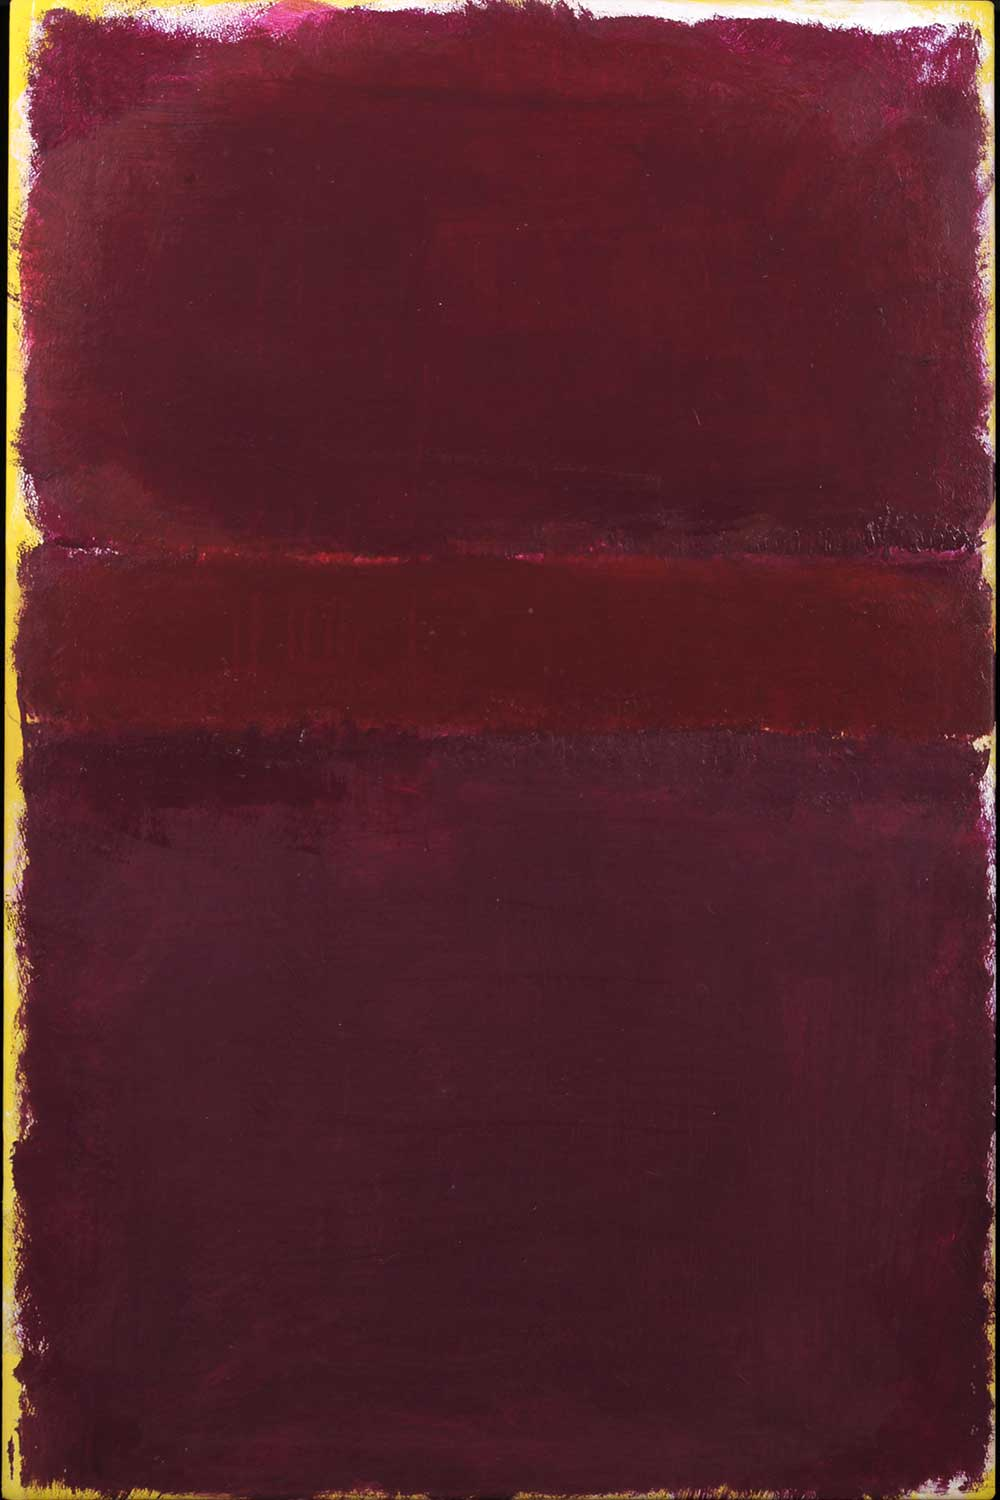 Red abstract acrylic Untitled Painting by Rothko